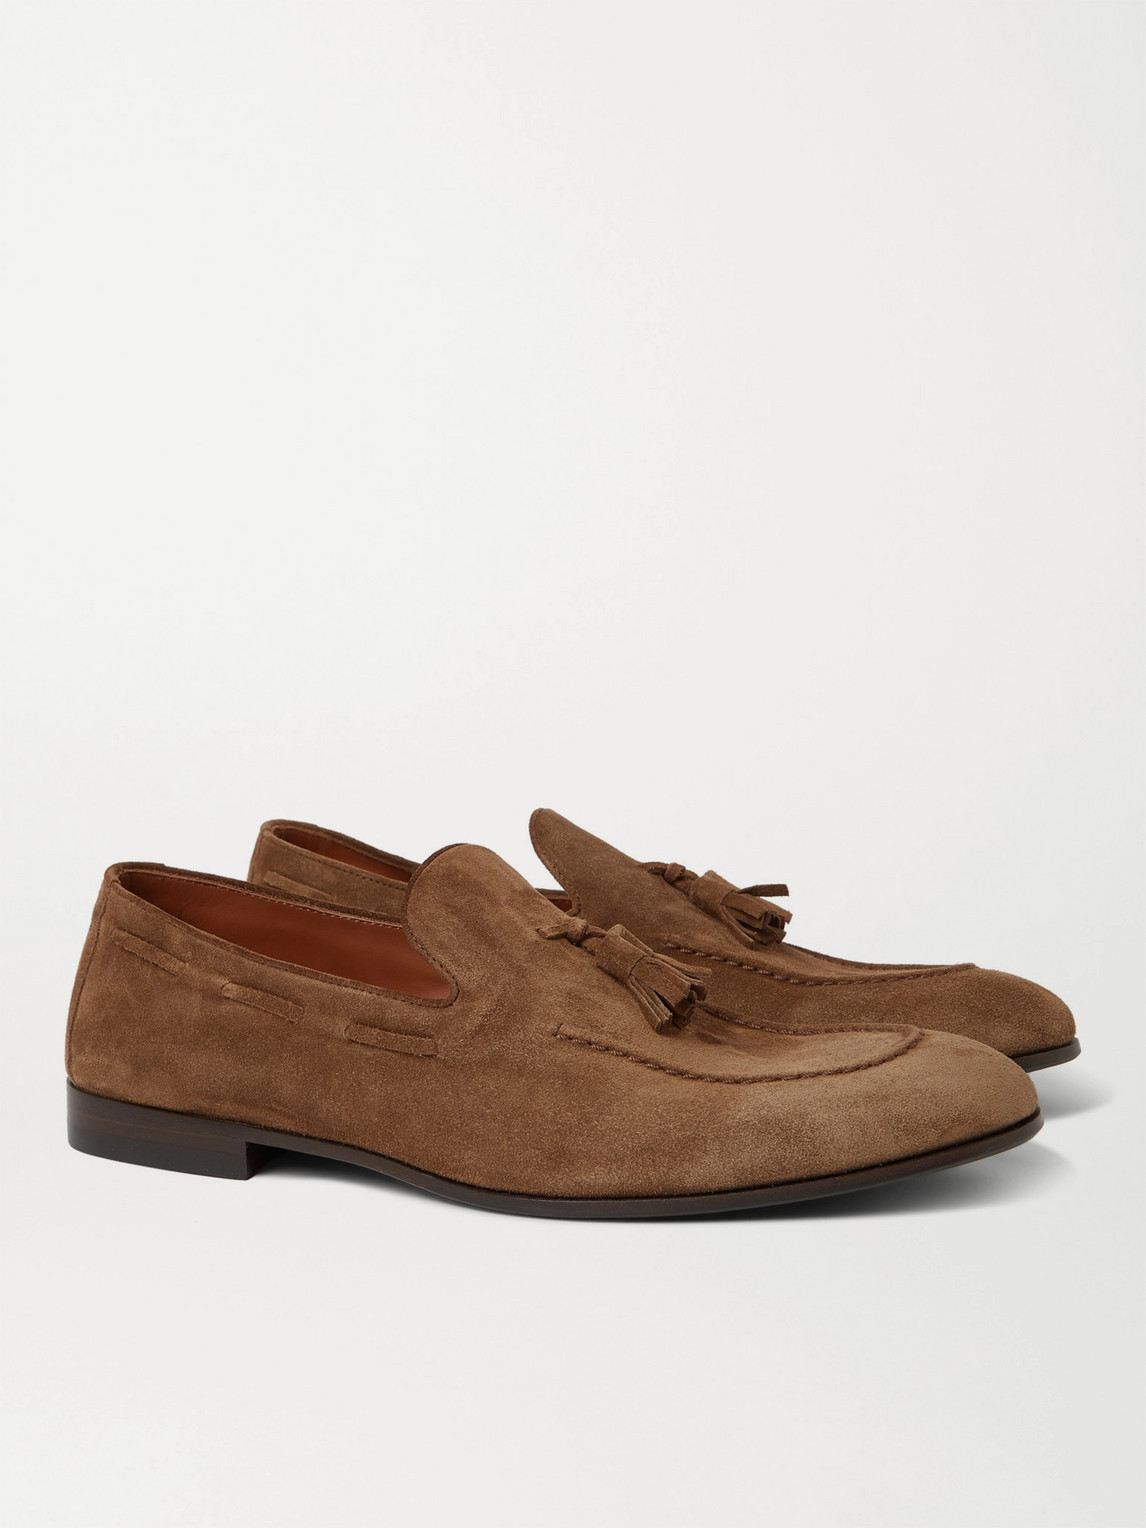 BRUNELLO CUCINELLI SUEDE TASSELLED LOAFERS